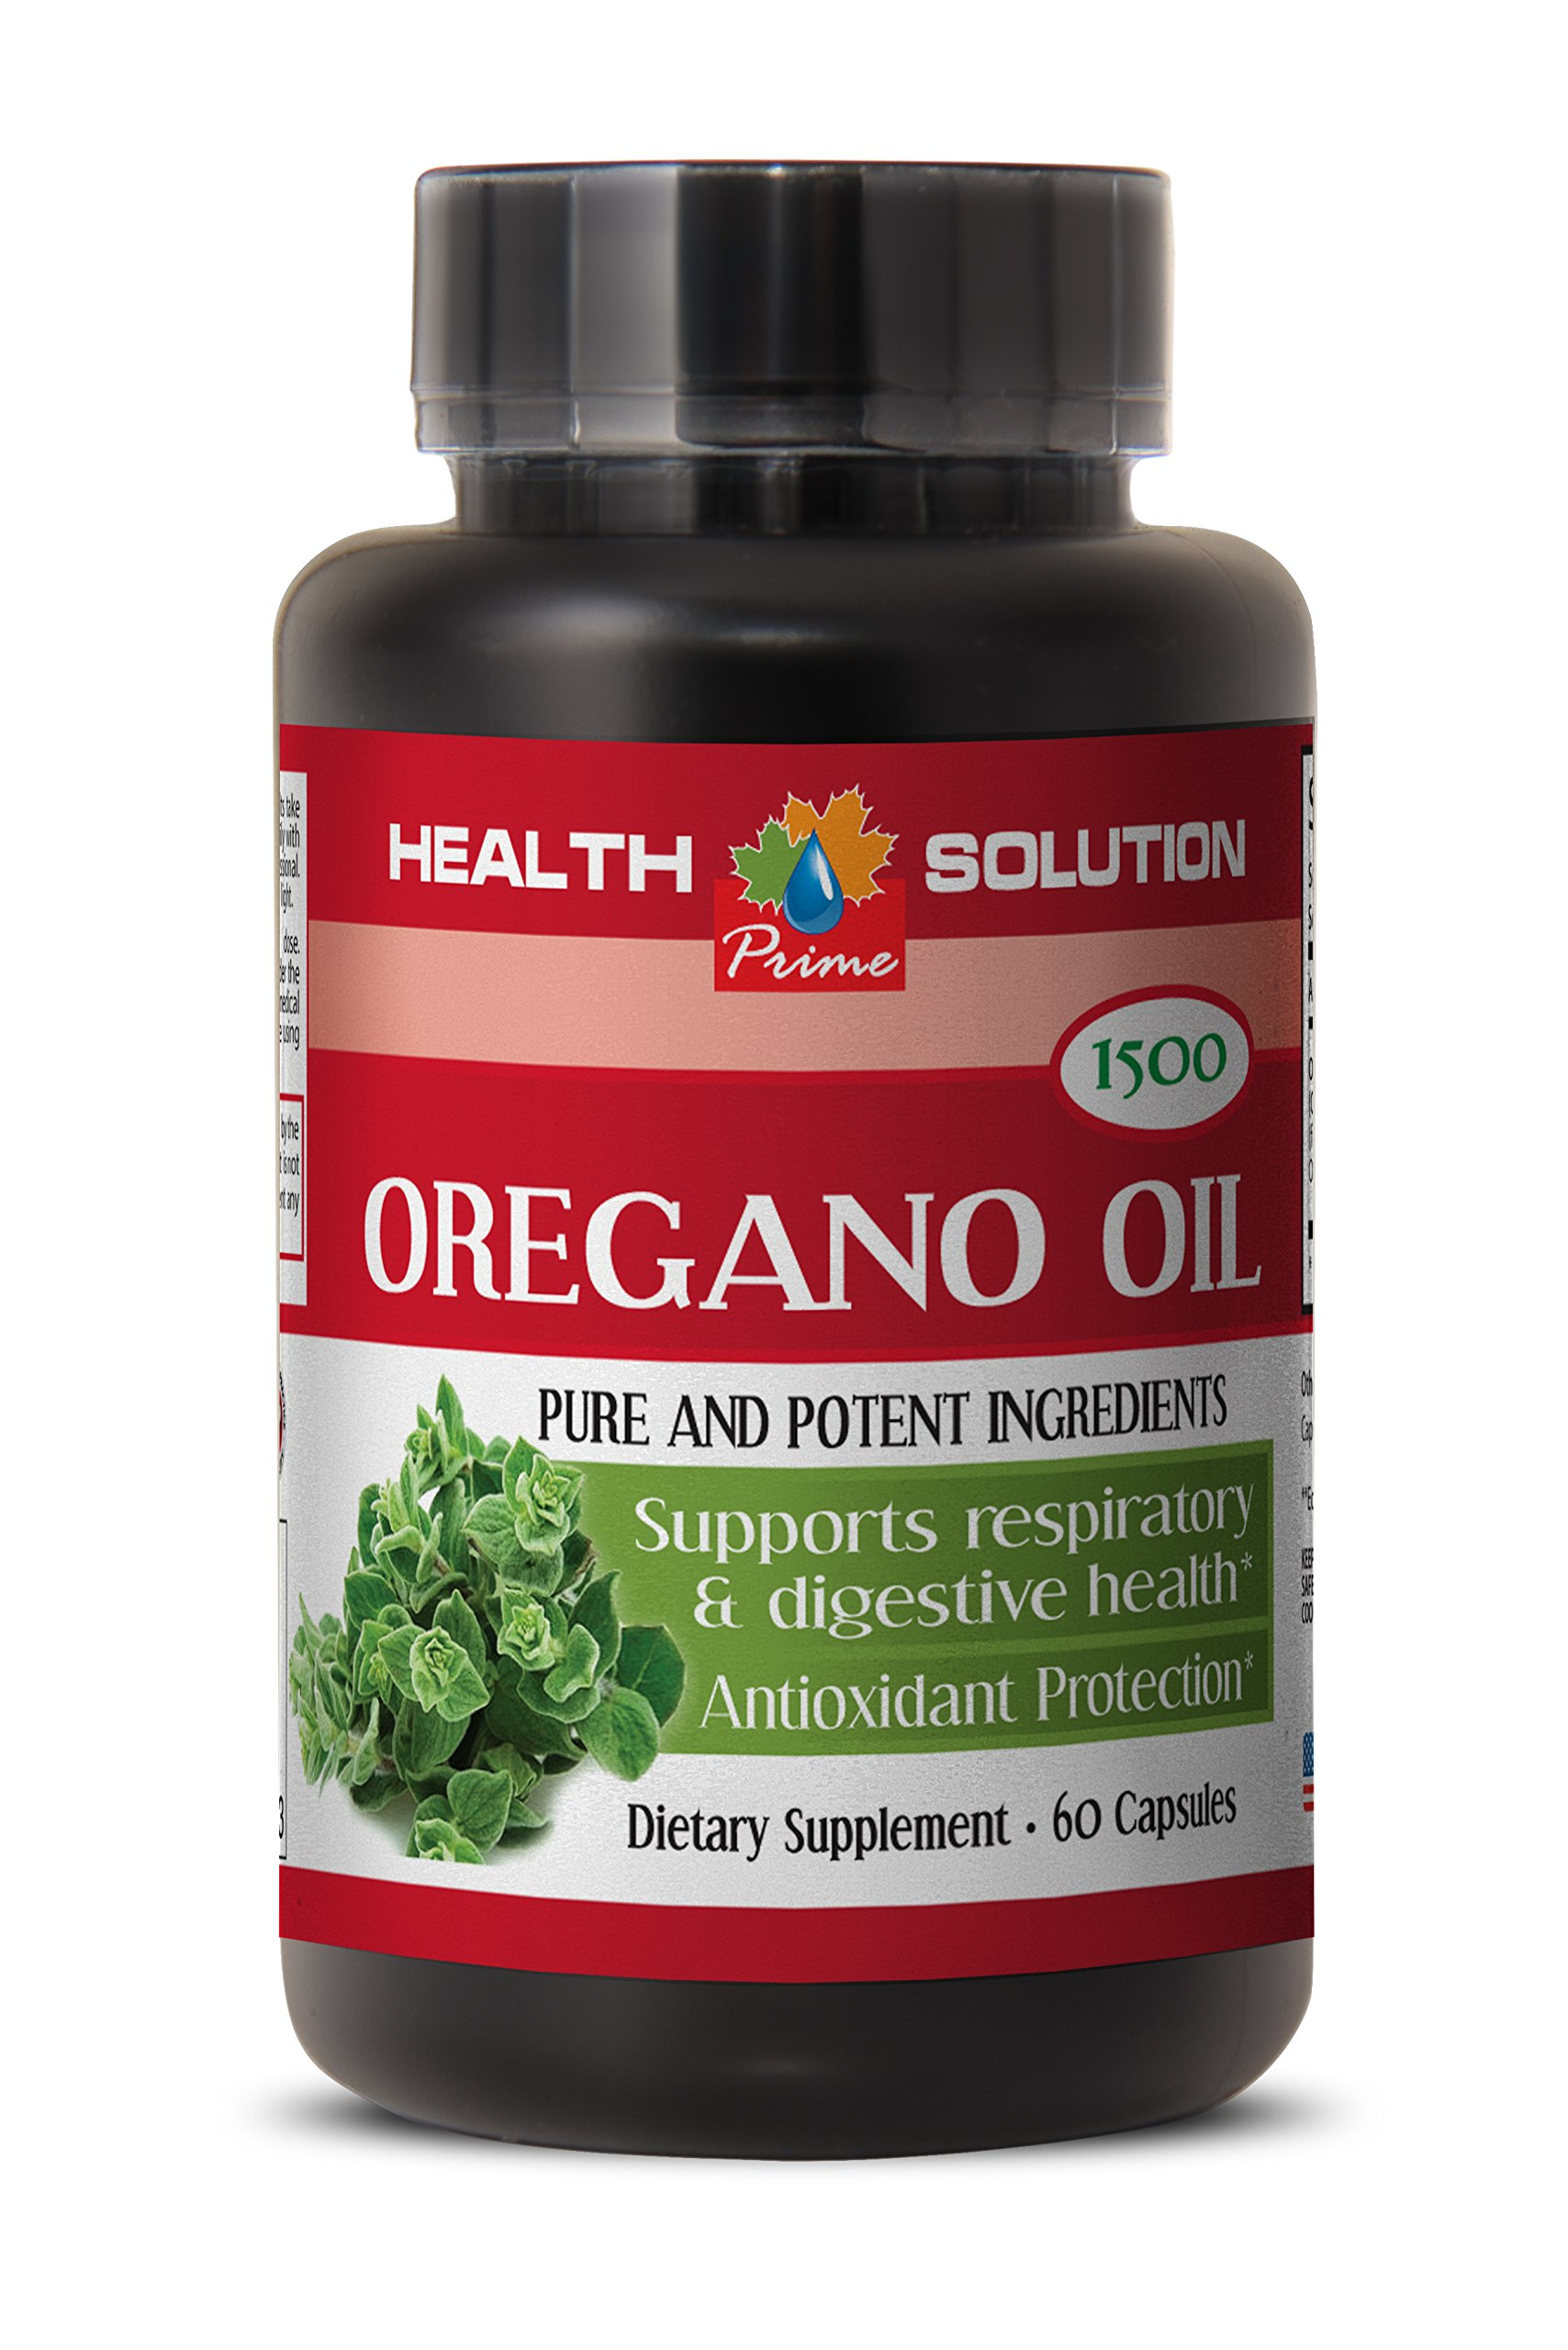 Immune system booster for women - OREGANO OIL EXTRACT (PURE AND POTENT INGREDIENTS) - Mediterranean oregano oil capsules - 1 Bottle 60 Capsules by Health Solution Prime